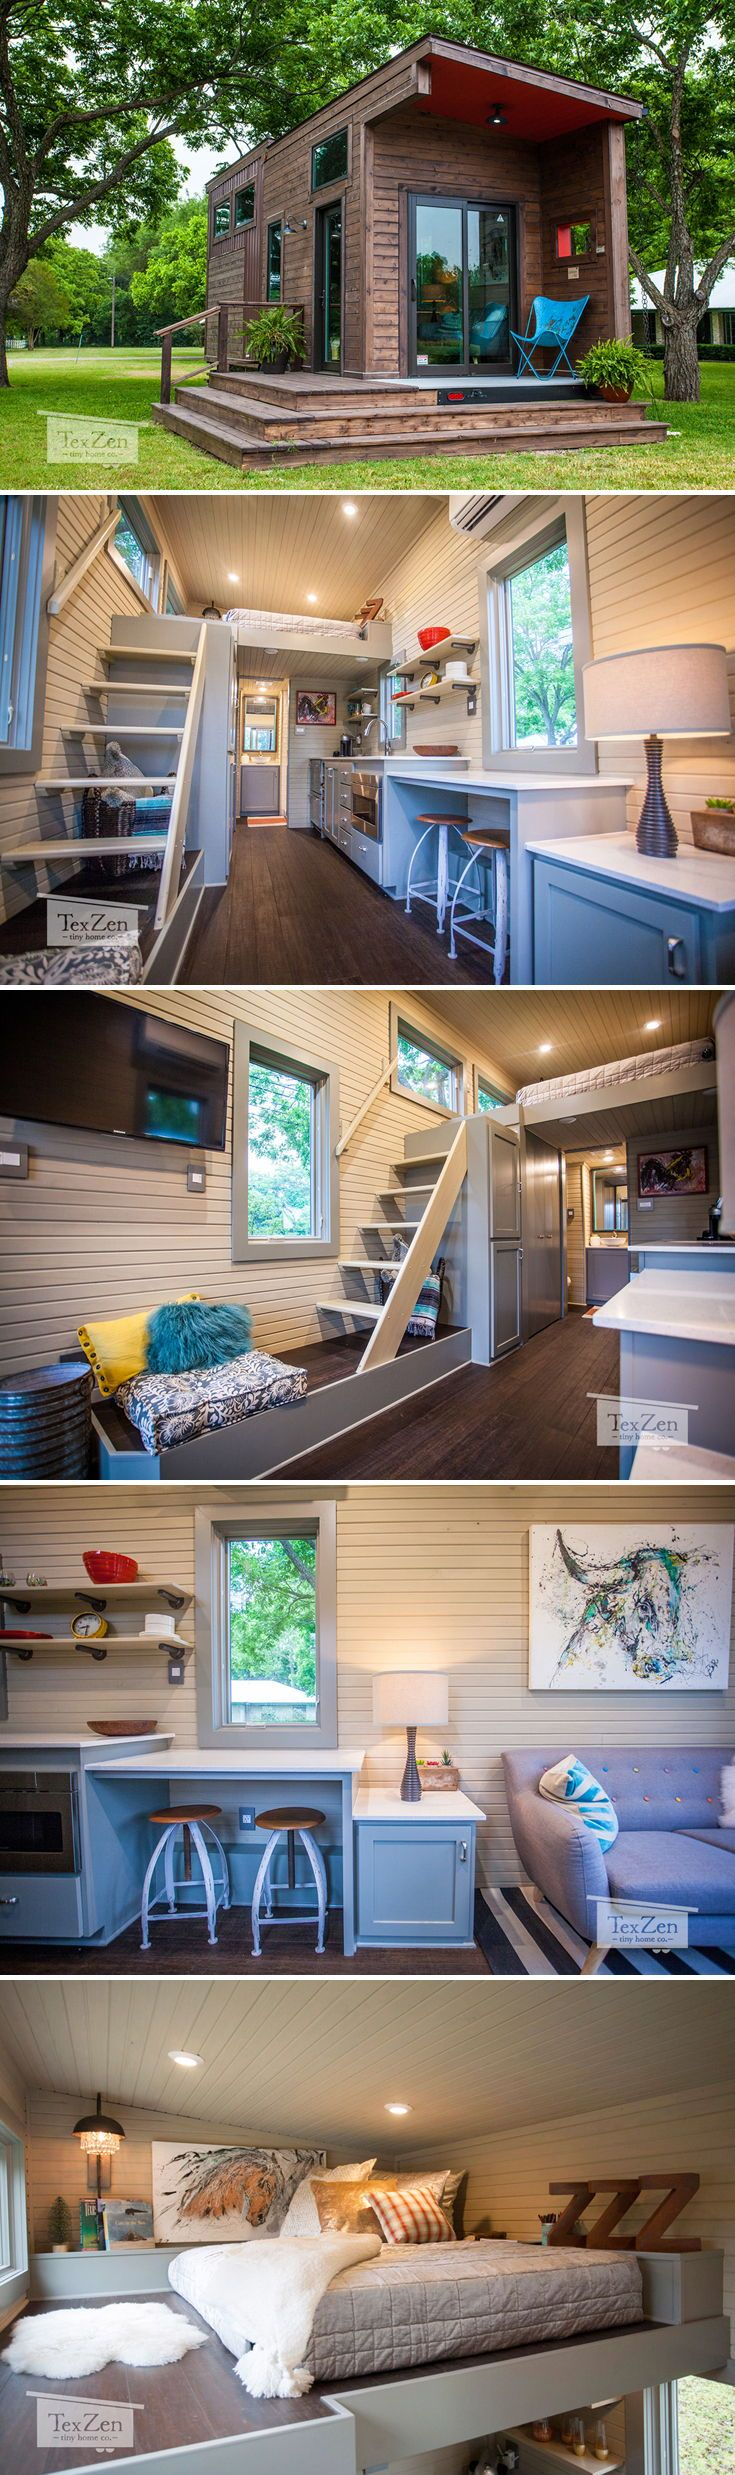 Photo of Single Loft by TexZen Tiny Home Co. – Tiny Living